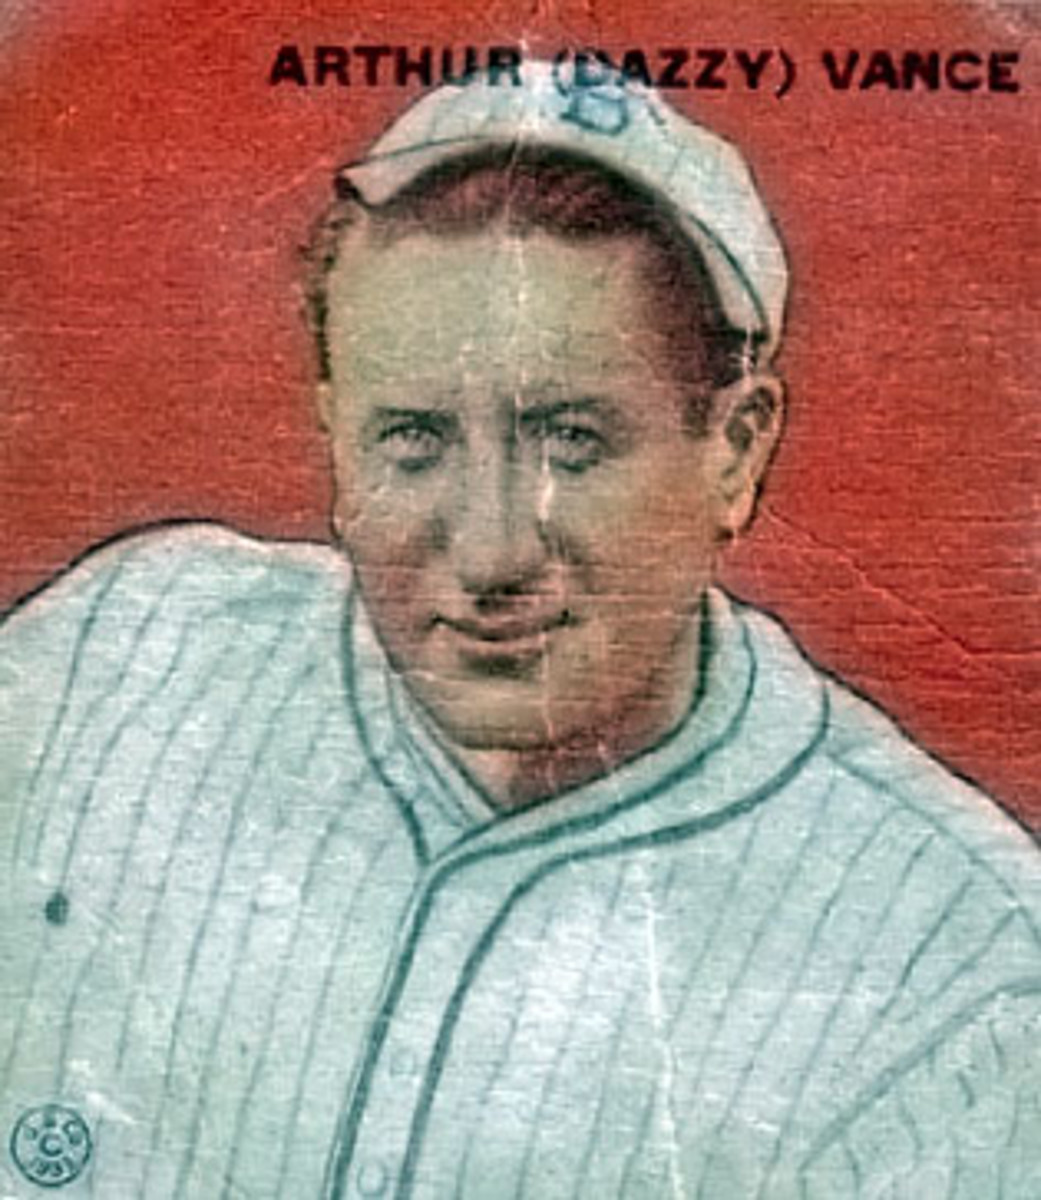 1933 Goudey Baseball Card of Dazzy Vance.